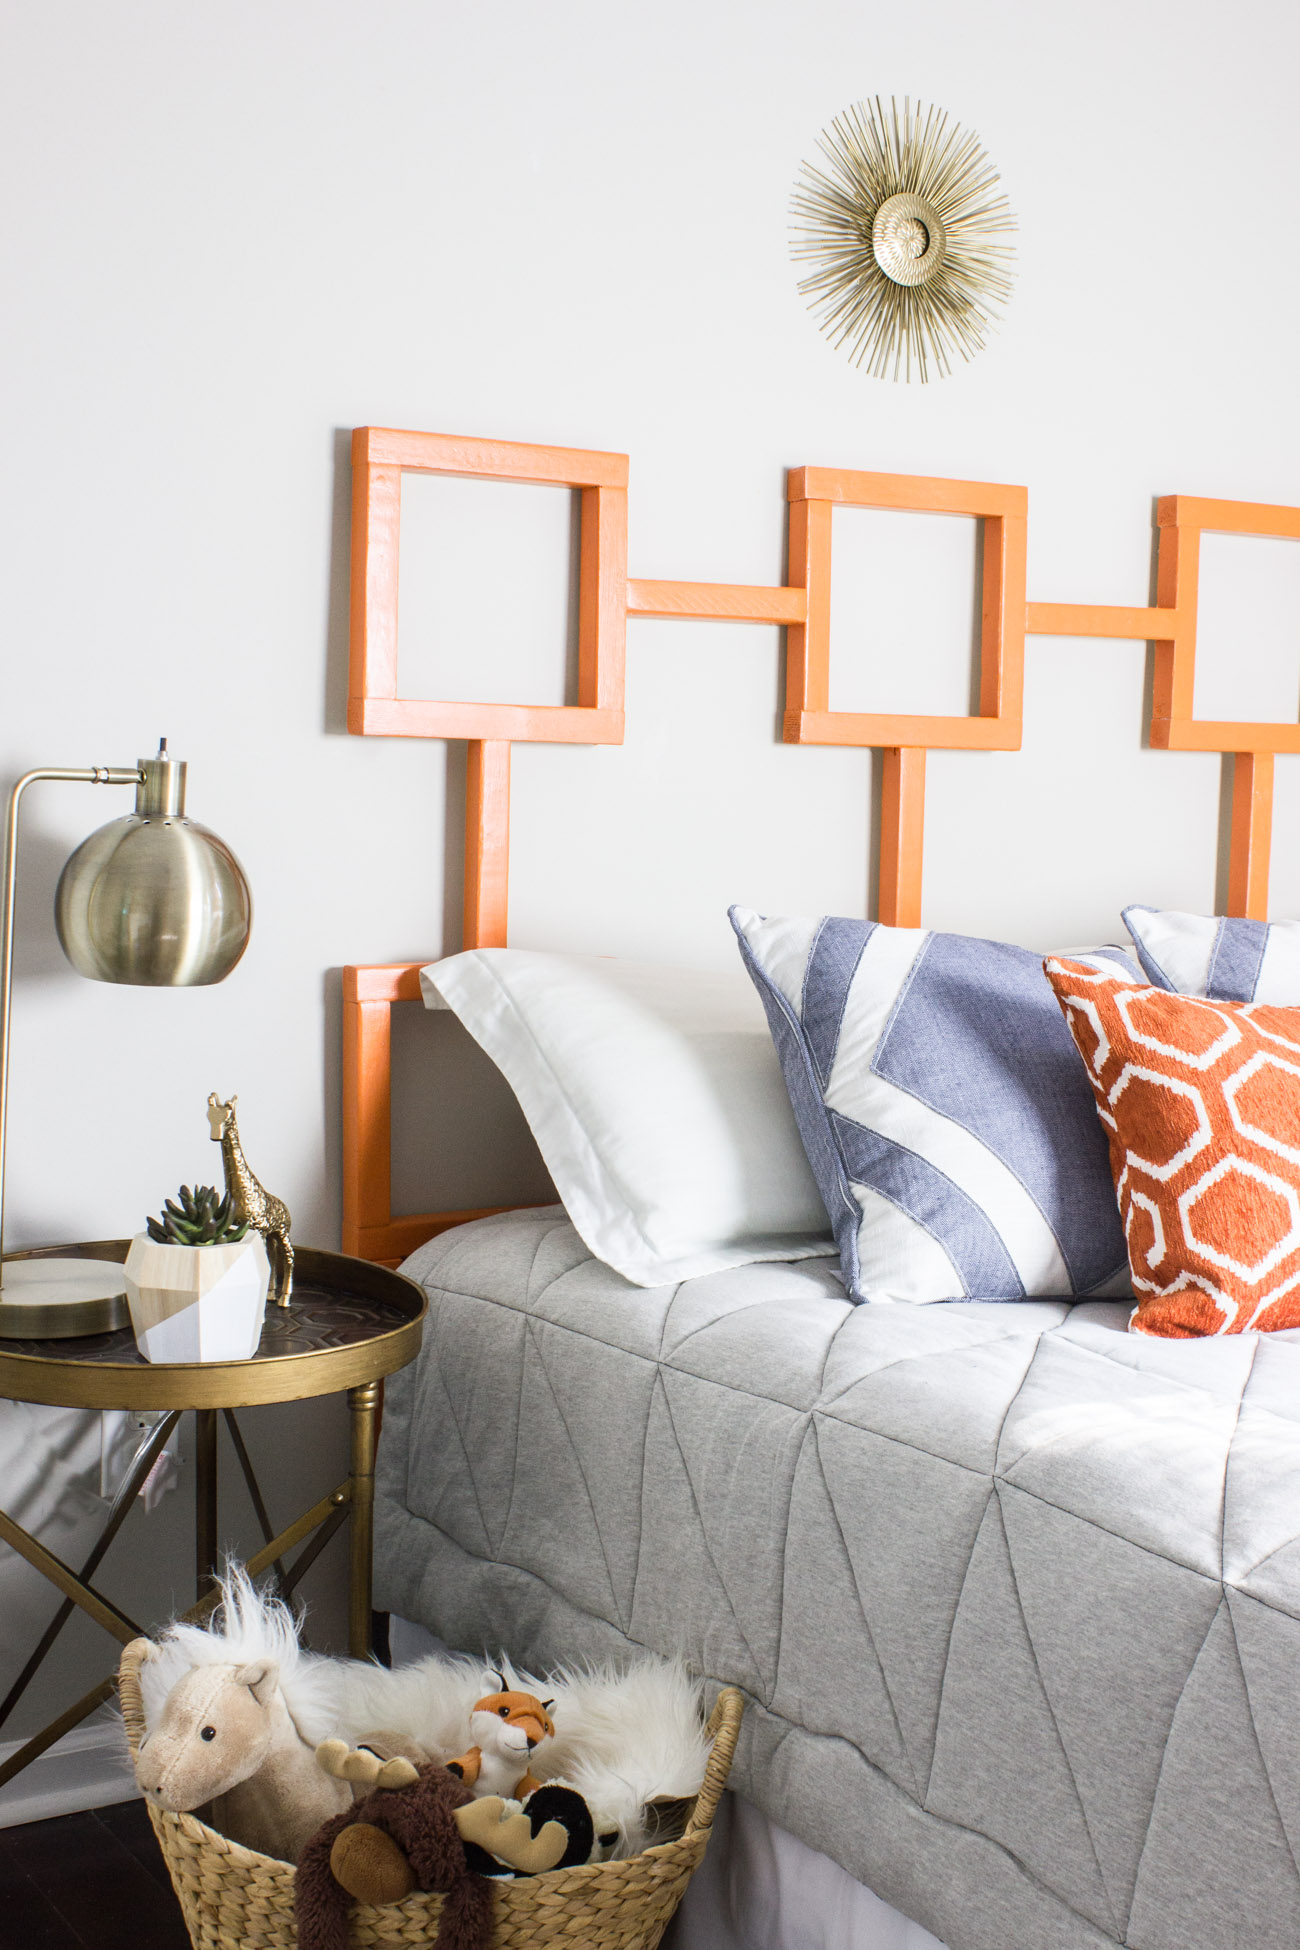 Learn how to make this DIY headboard with a fun geometric shape! This one is a yummy orange but you could customize it with any finish or color you like.